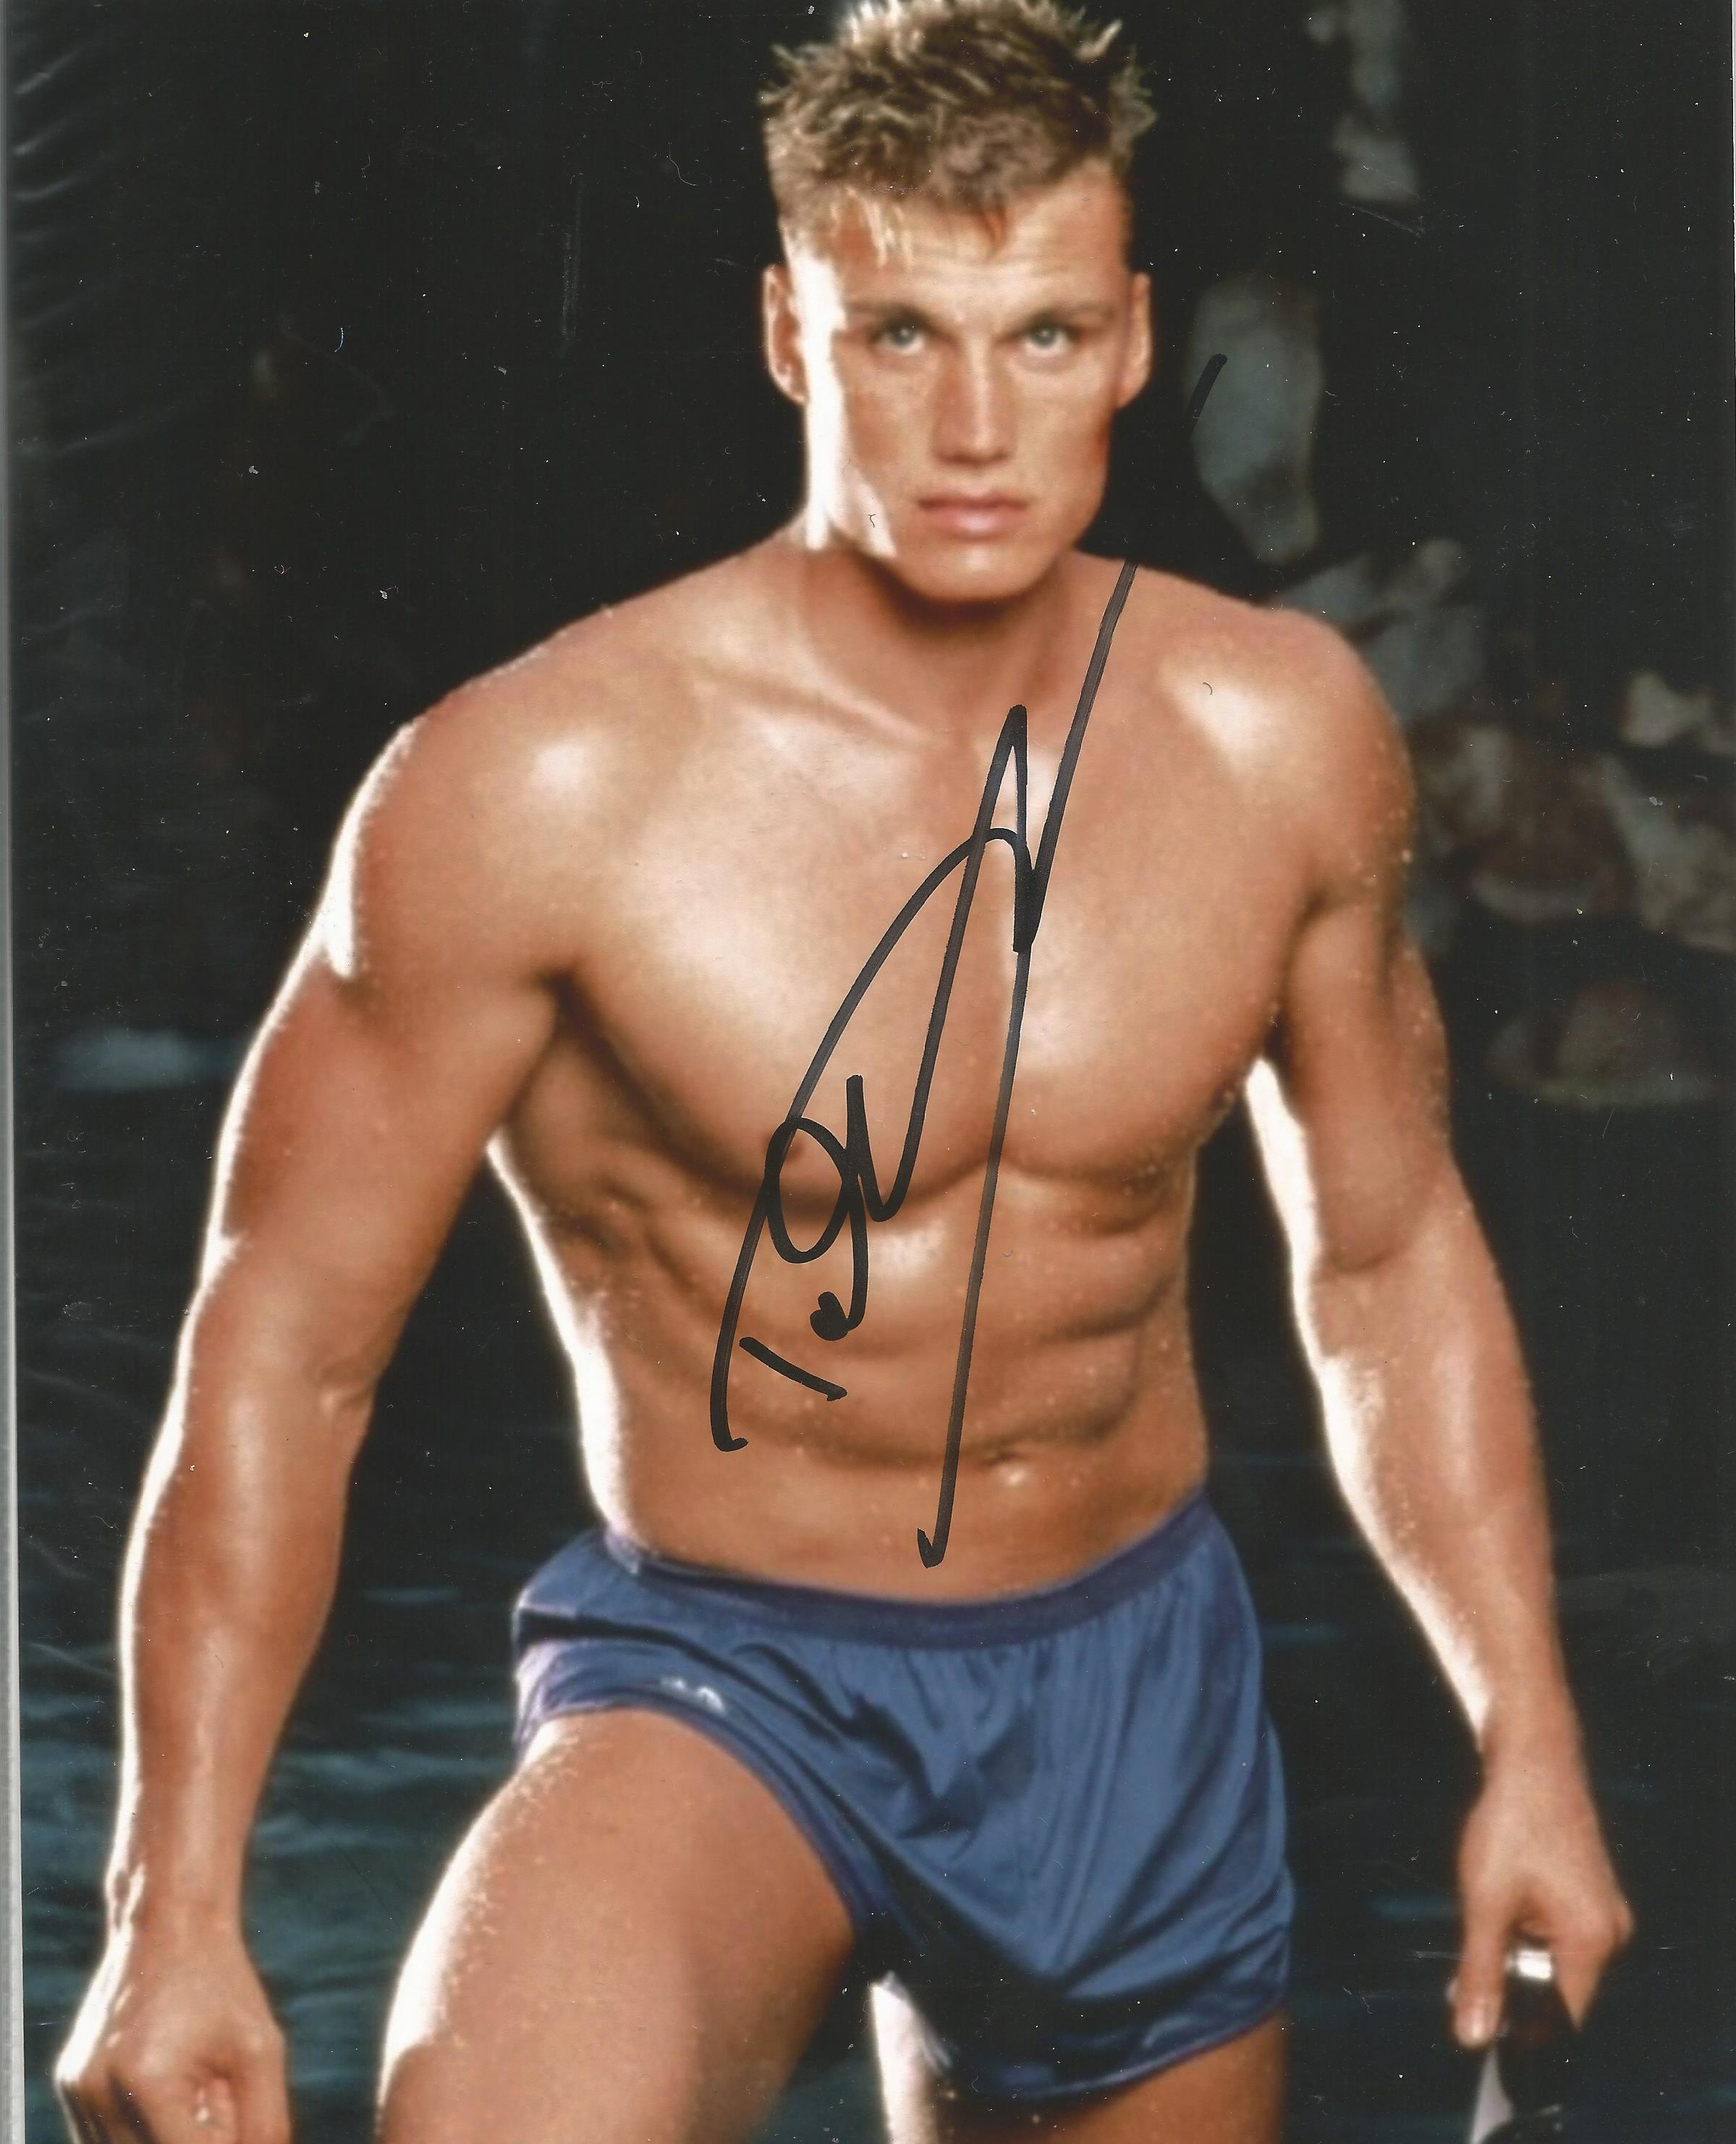 Lot 50 - Dolph Lundgren signed 10 x 8 colour Photoshoot Portrait Photo, from in person collection autographed